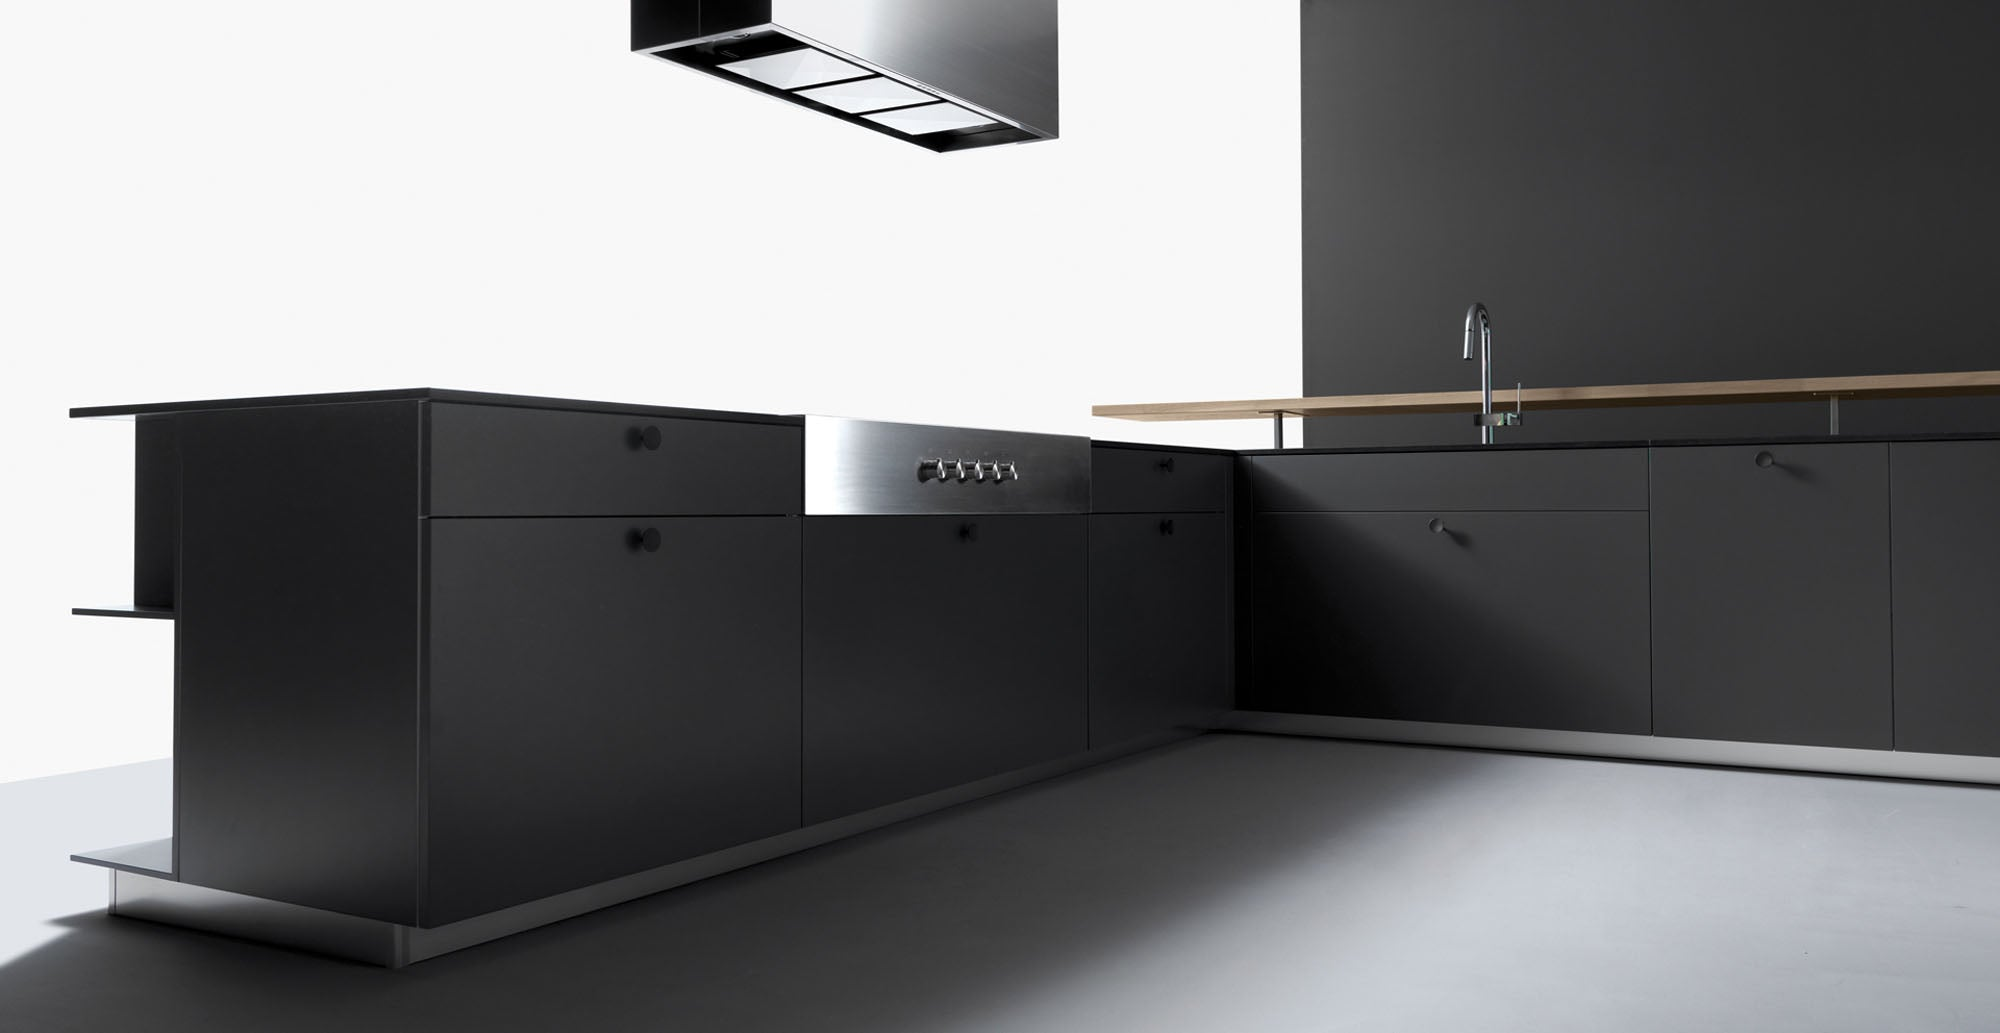 Luxury Italian kitchens from Effeti - the premium Tuscan kitchen manufacturer